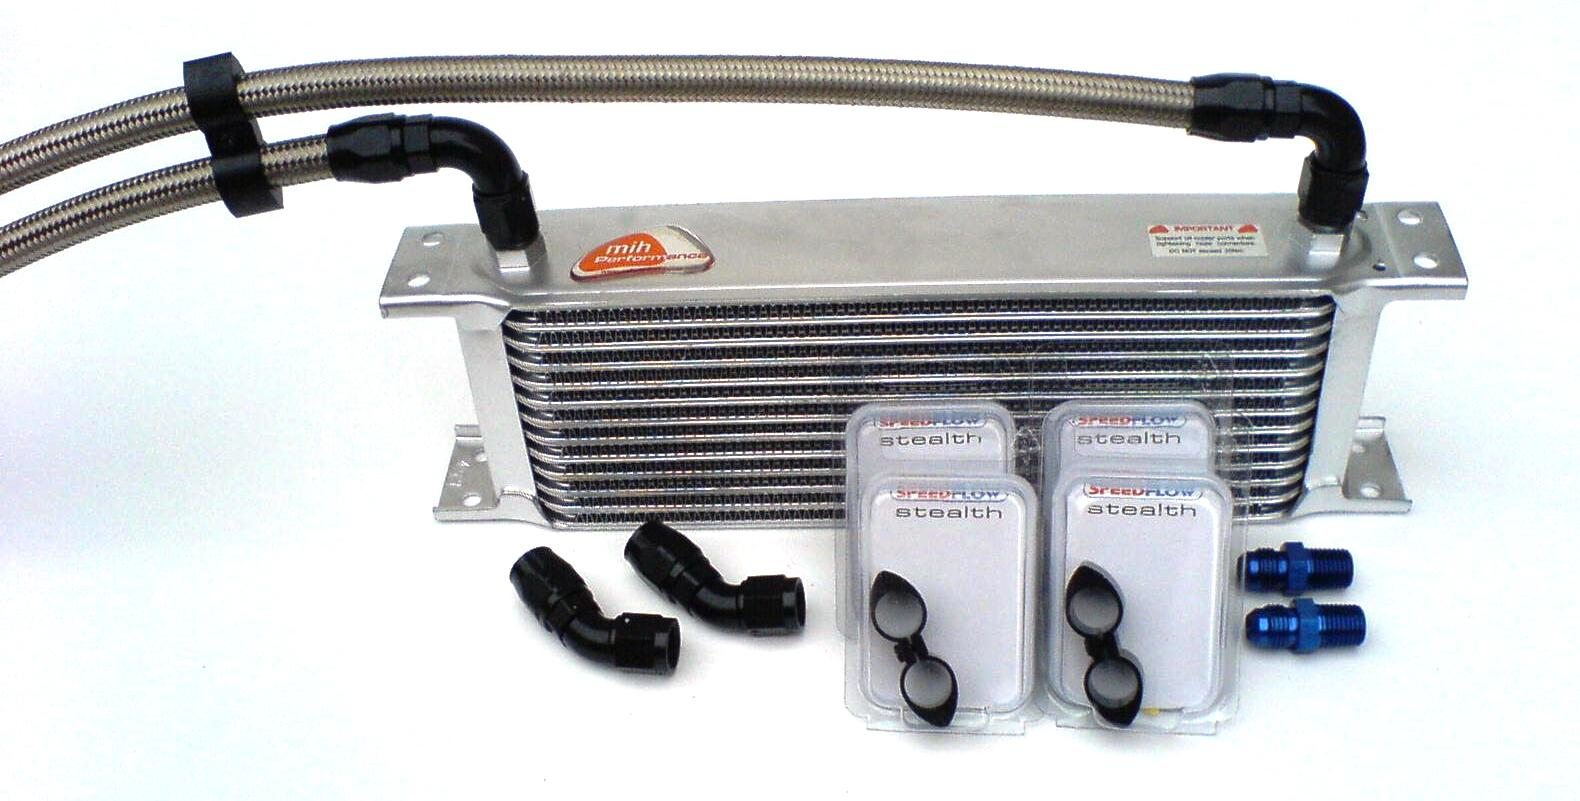 Transmission Fluid Cooler : Transmission oil cooler kit with black hose ends speedflow